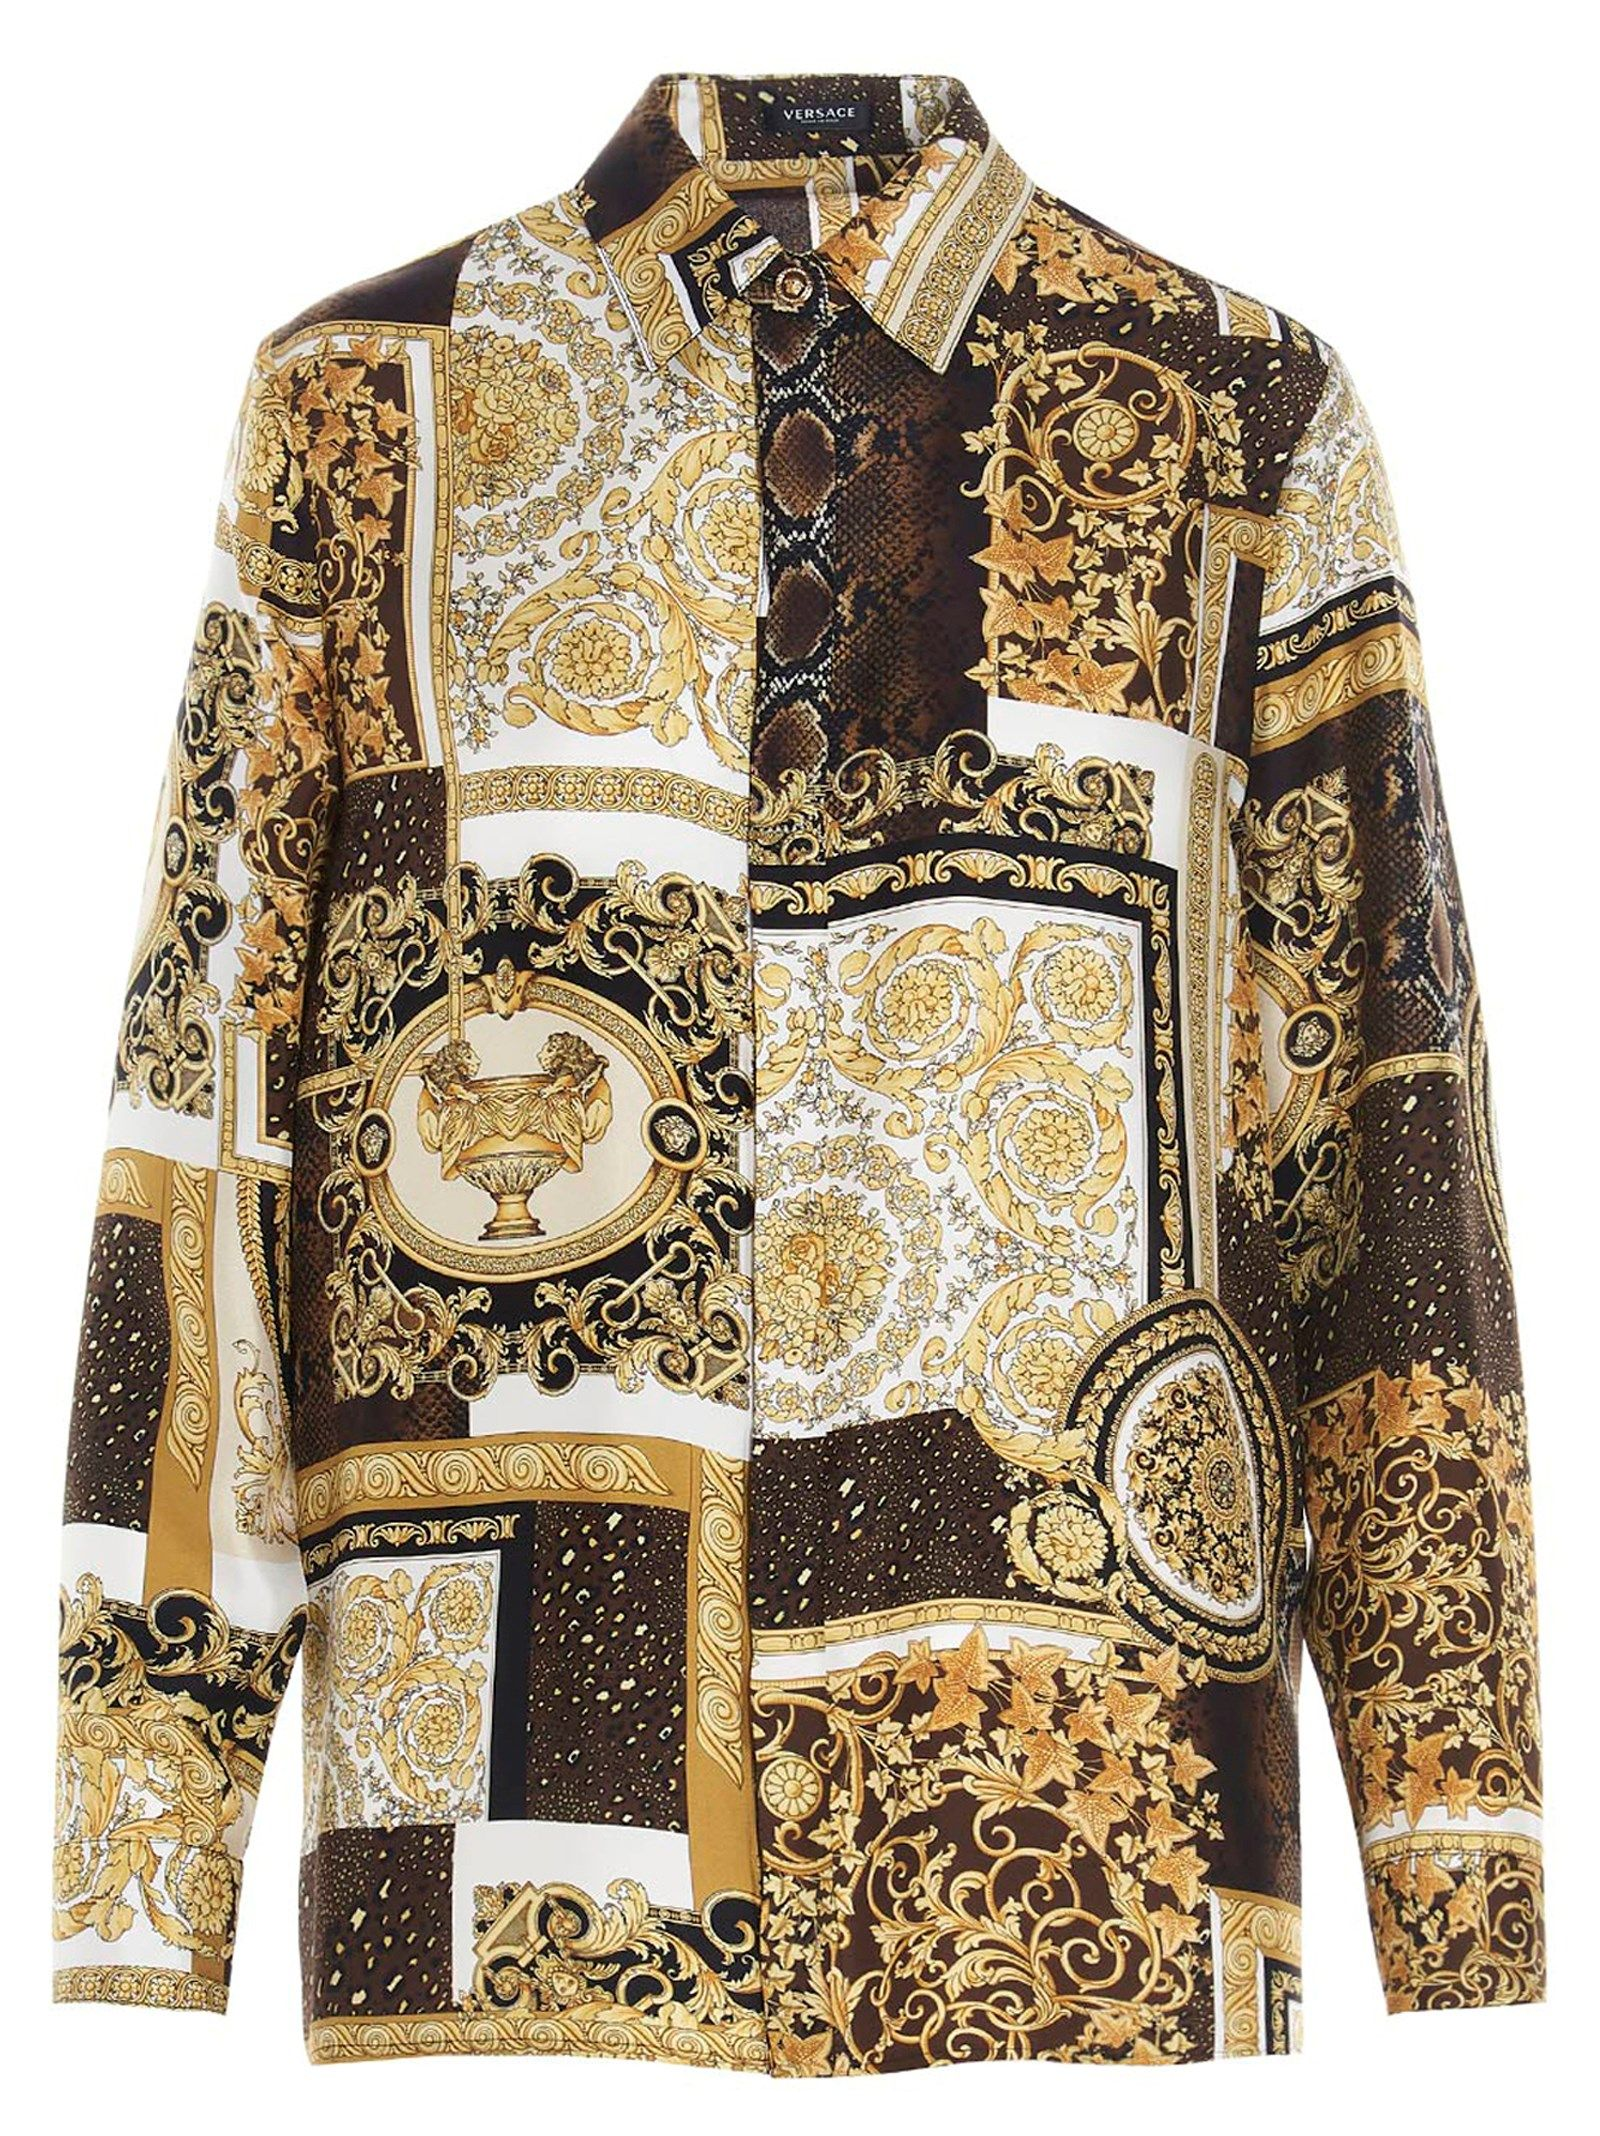 Versace Shirts VERSACE WOMEN'S A826621F004565N030 MULTICOLOR OTHER MATERIALS SHIRT